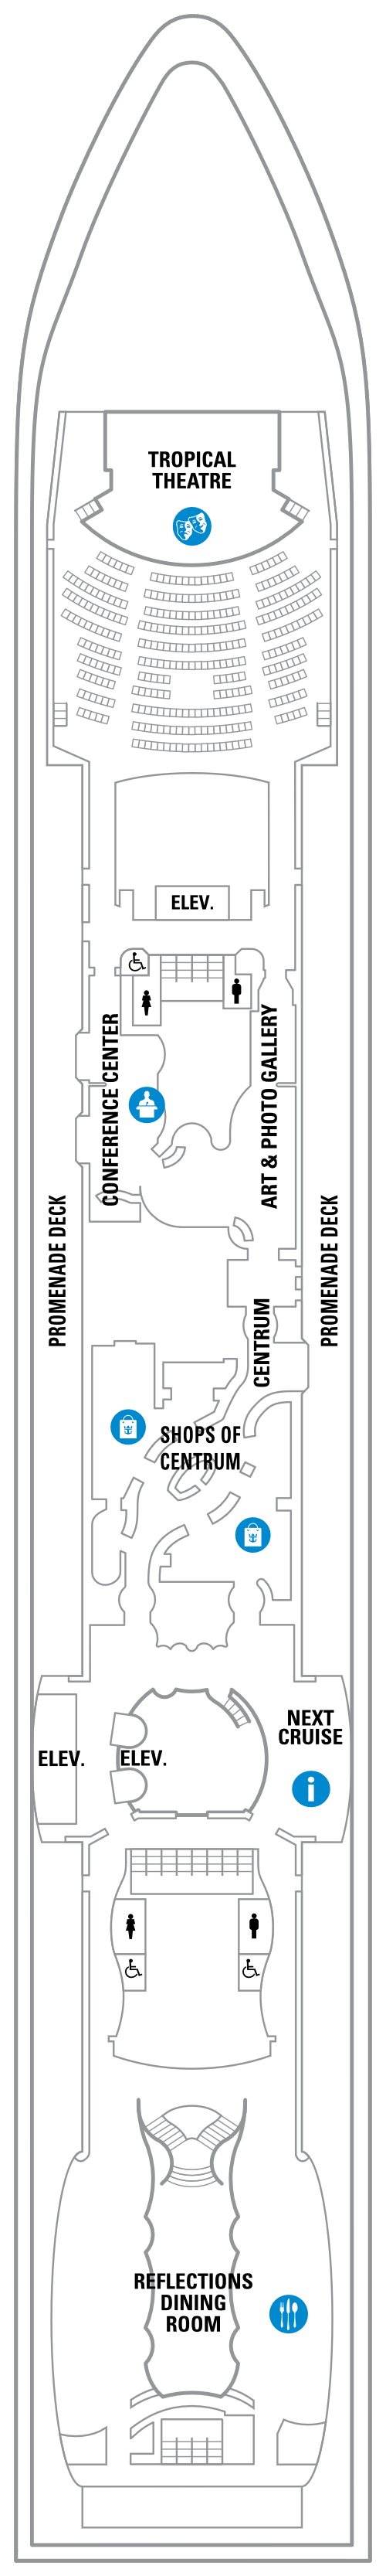 Serenade Of The Seas Deck 5 layout